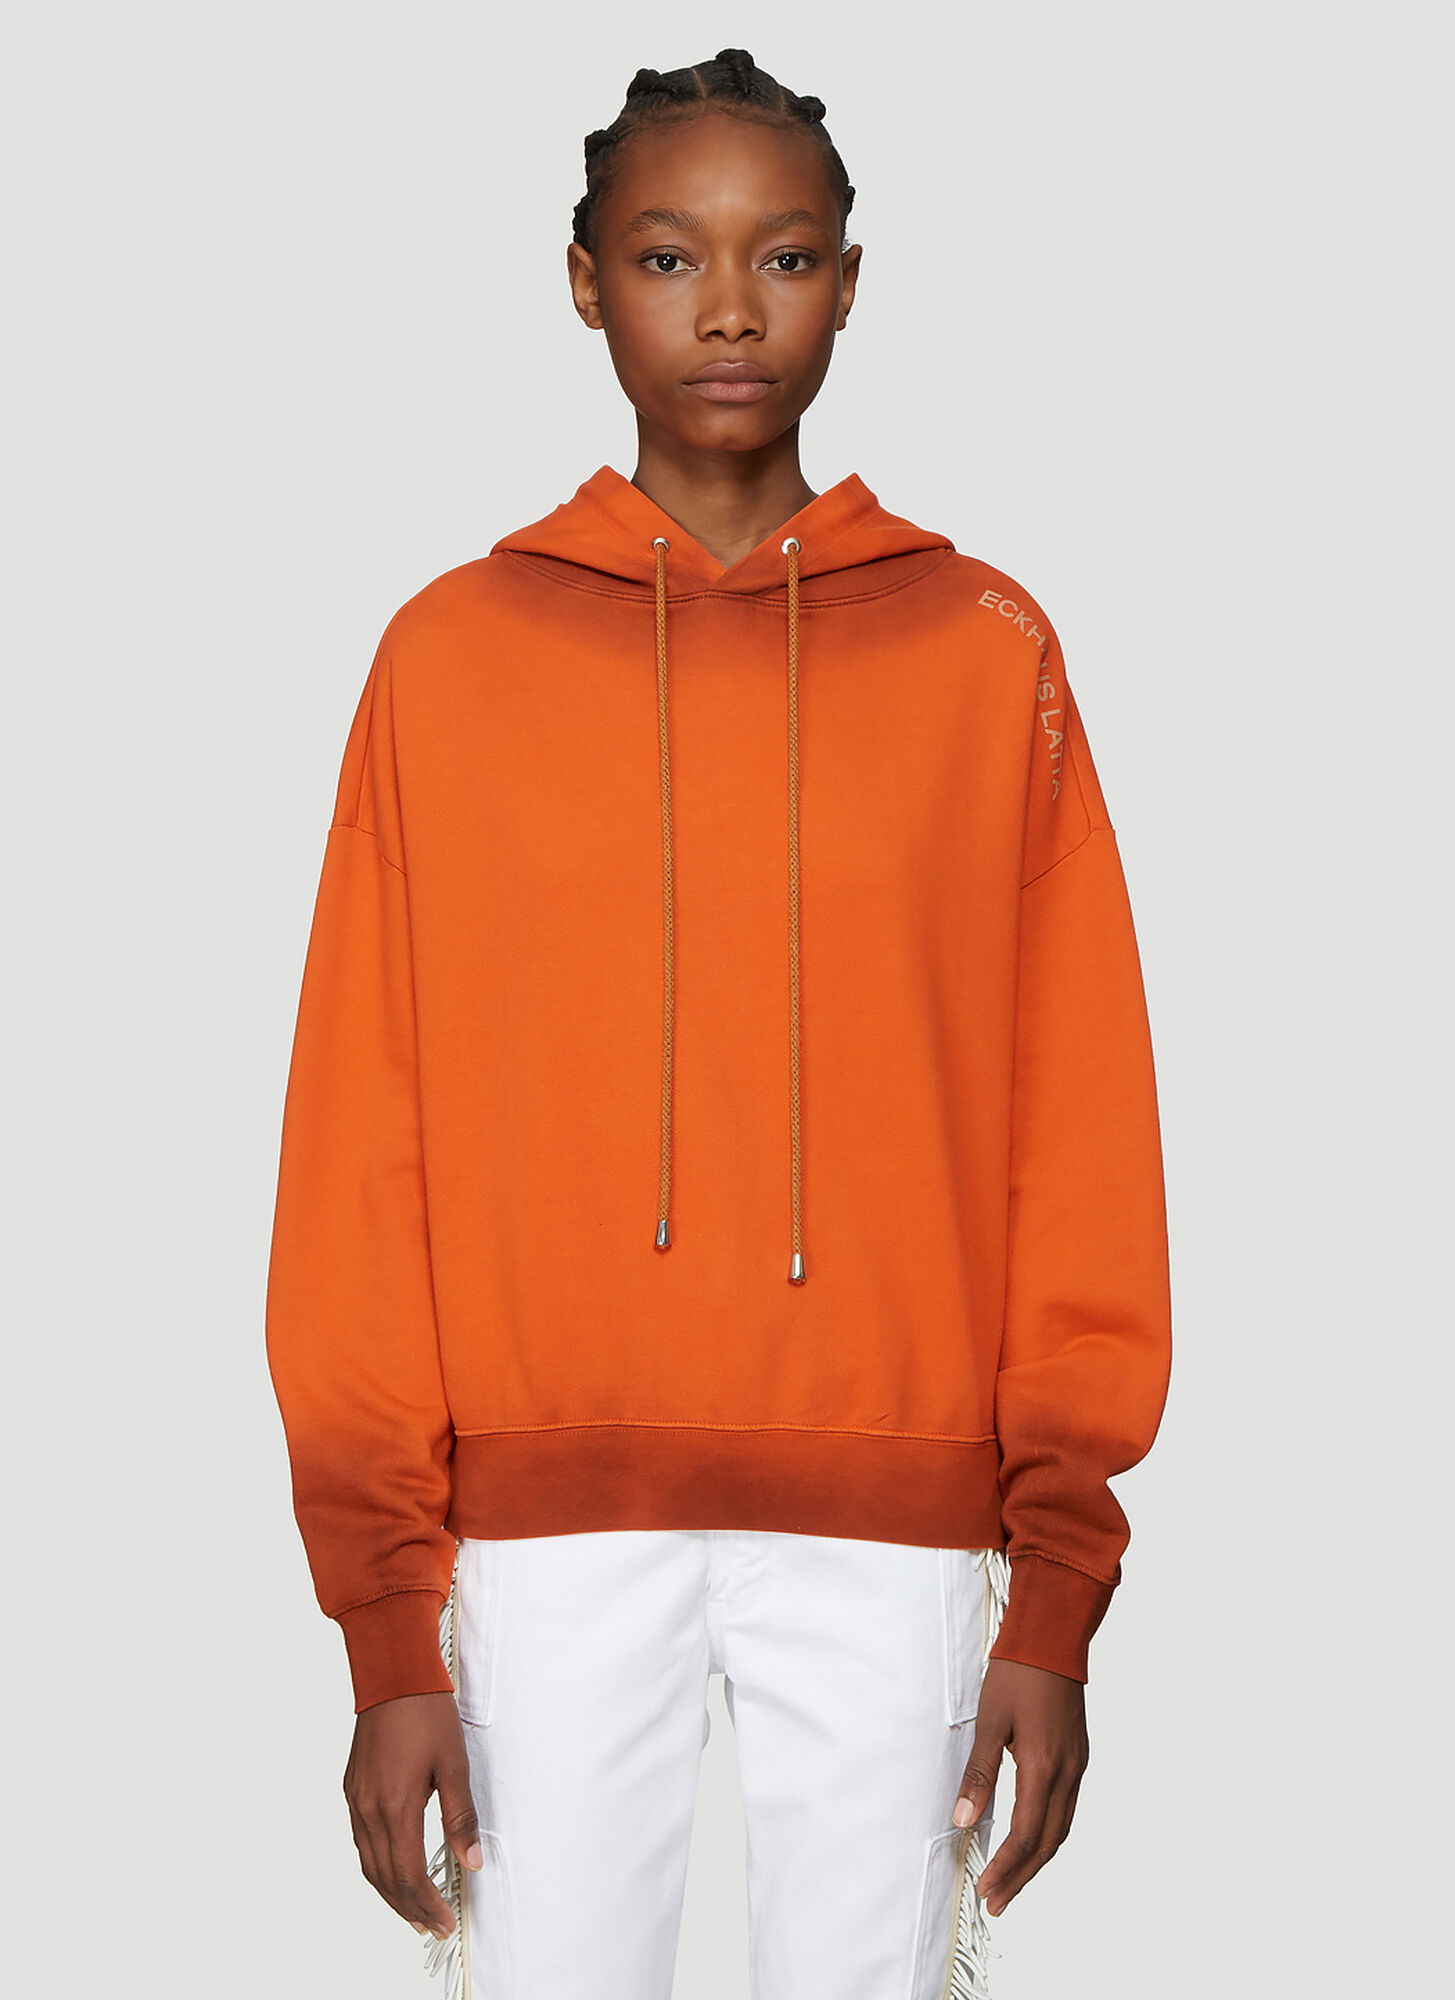 Eckhaus Latta Hooded Logo Sweatshirt in Orange